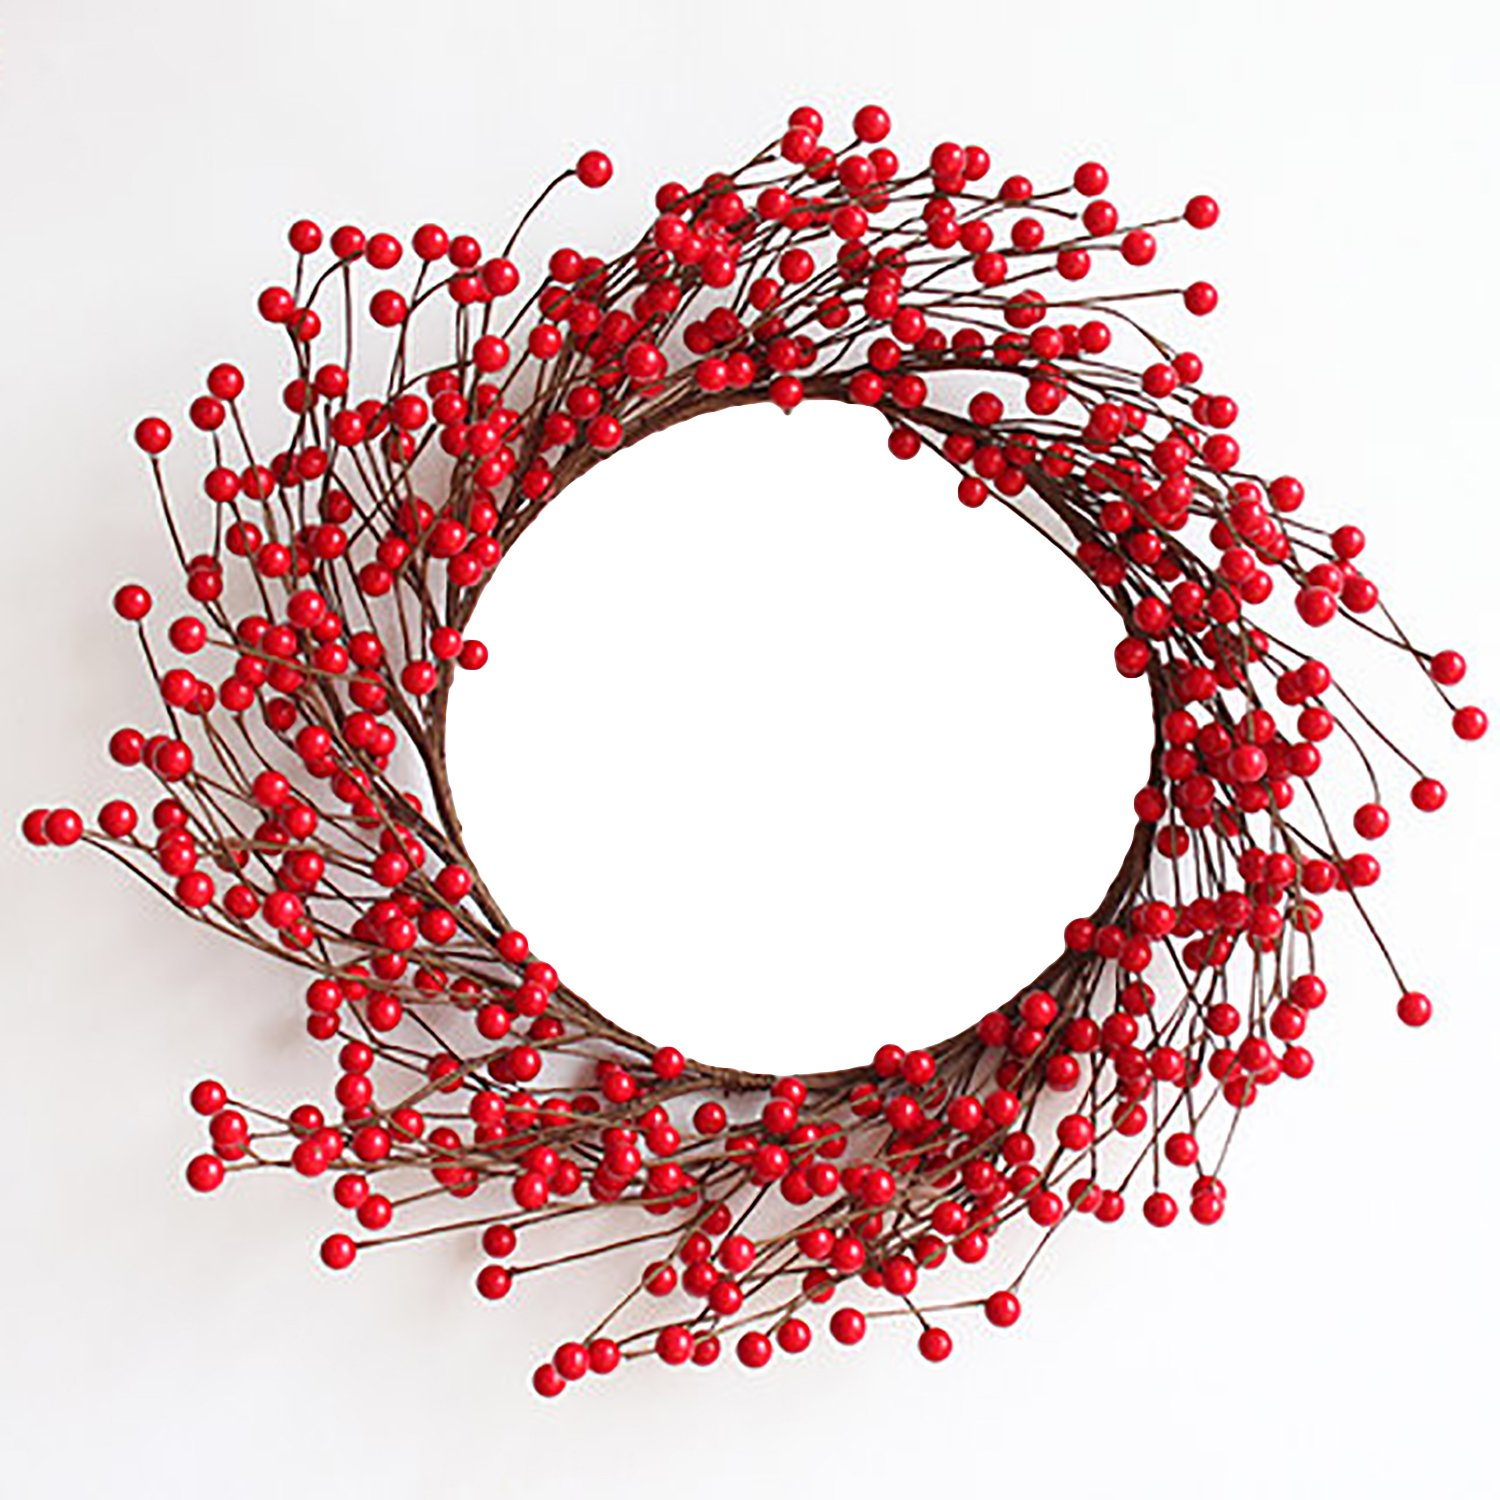 16 Artificial Red Berries Christmas Wreath for Christmas Holiday Wedding Parties Decor rescozy